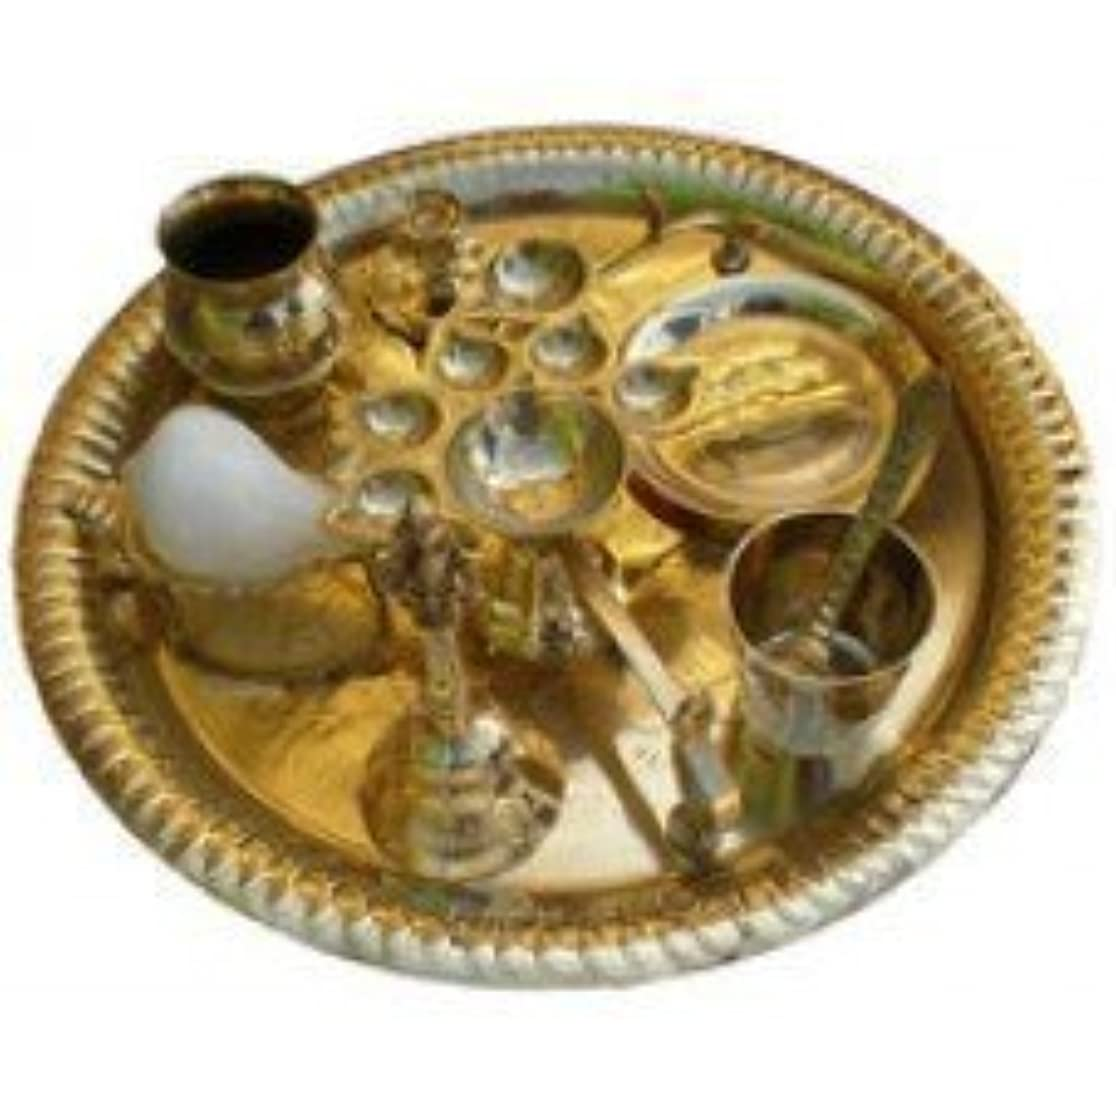 リボン工夫する田舎Aarti Set (tray with Bell, Incense Holder, Flower Tray, Conch, Ghee Lamps)